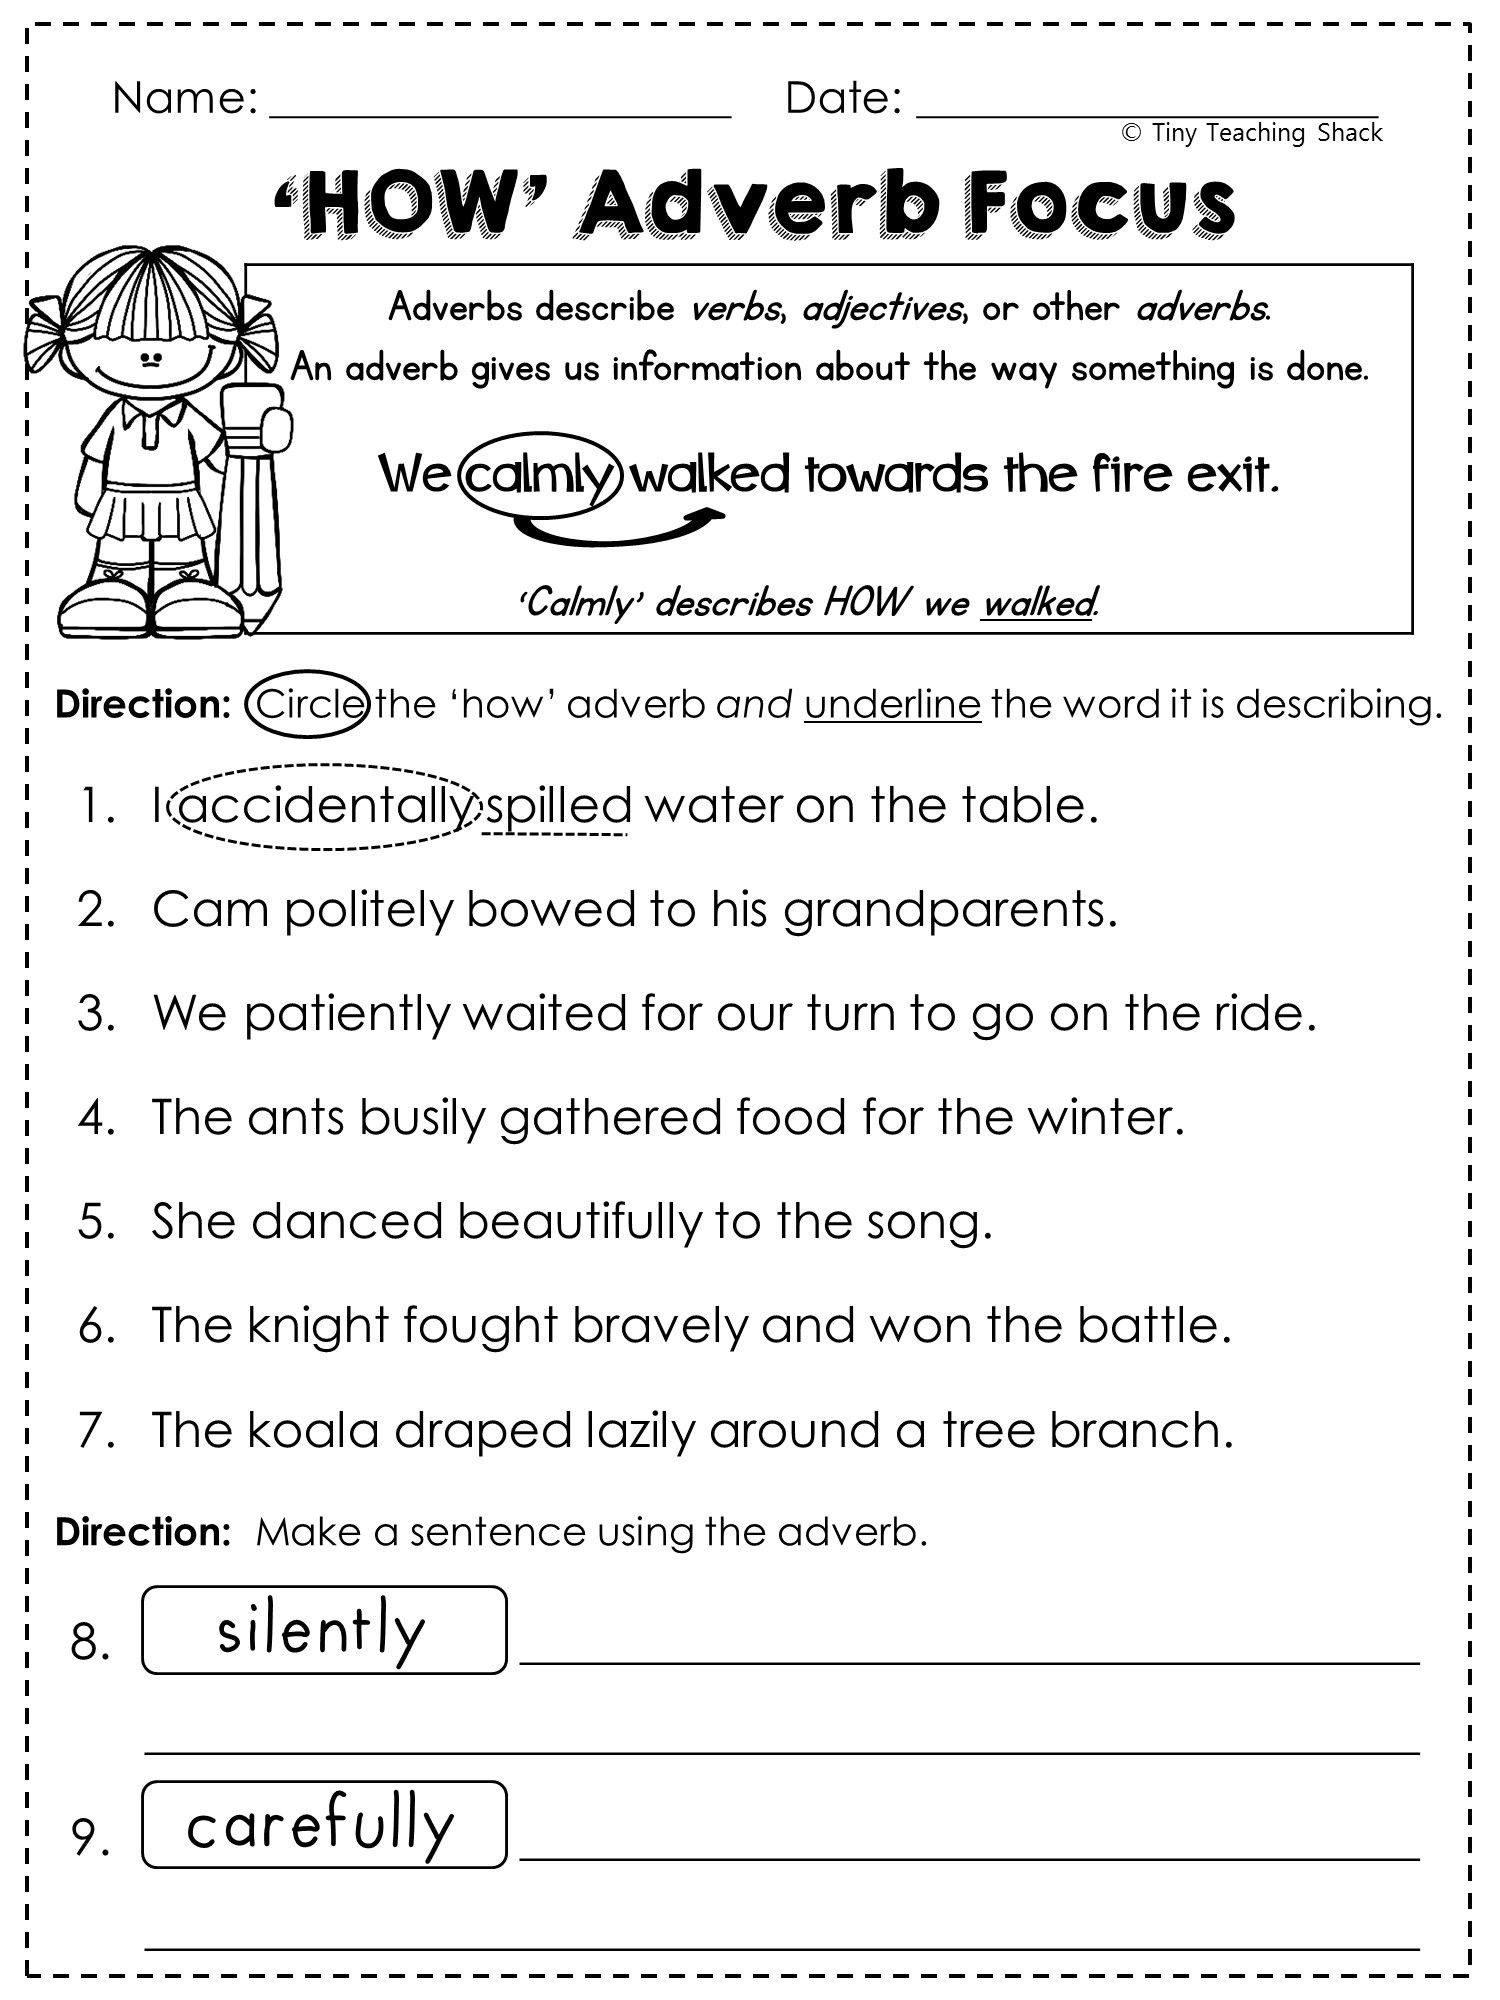 Character Traits Worksheet 2nd Grade 2nd Grade Language Arts and Grammar  Practice …   Third grade grammar worksheets [ 2000 x 1500 Pixel ]